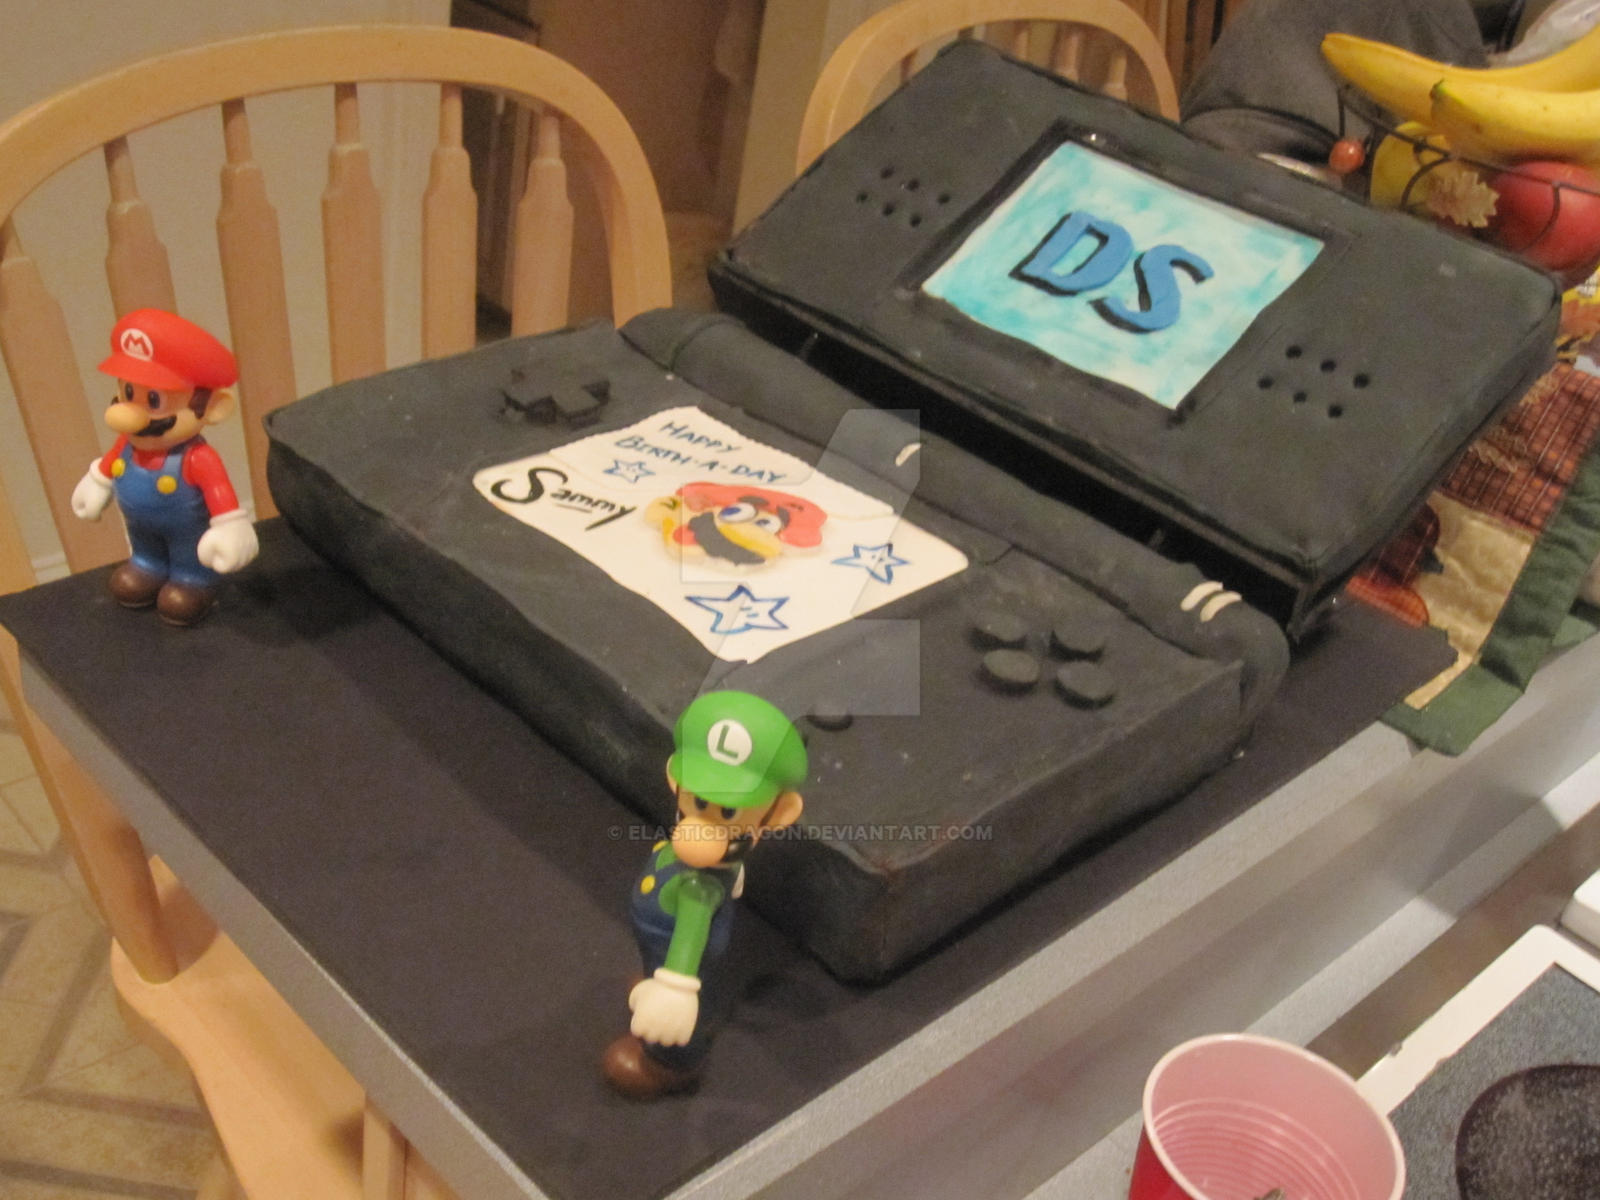 Nintendo DS Cake by elasticdragon